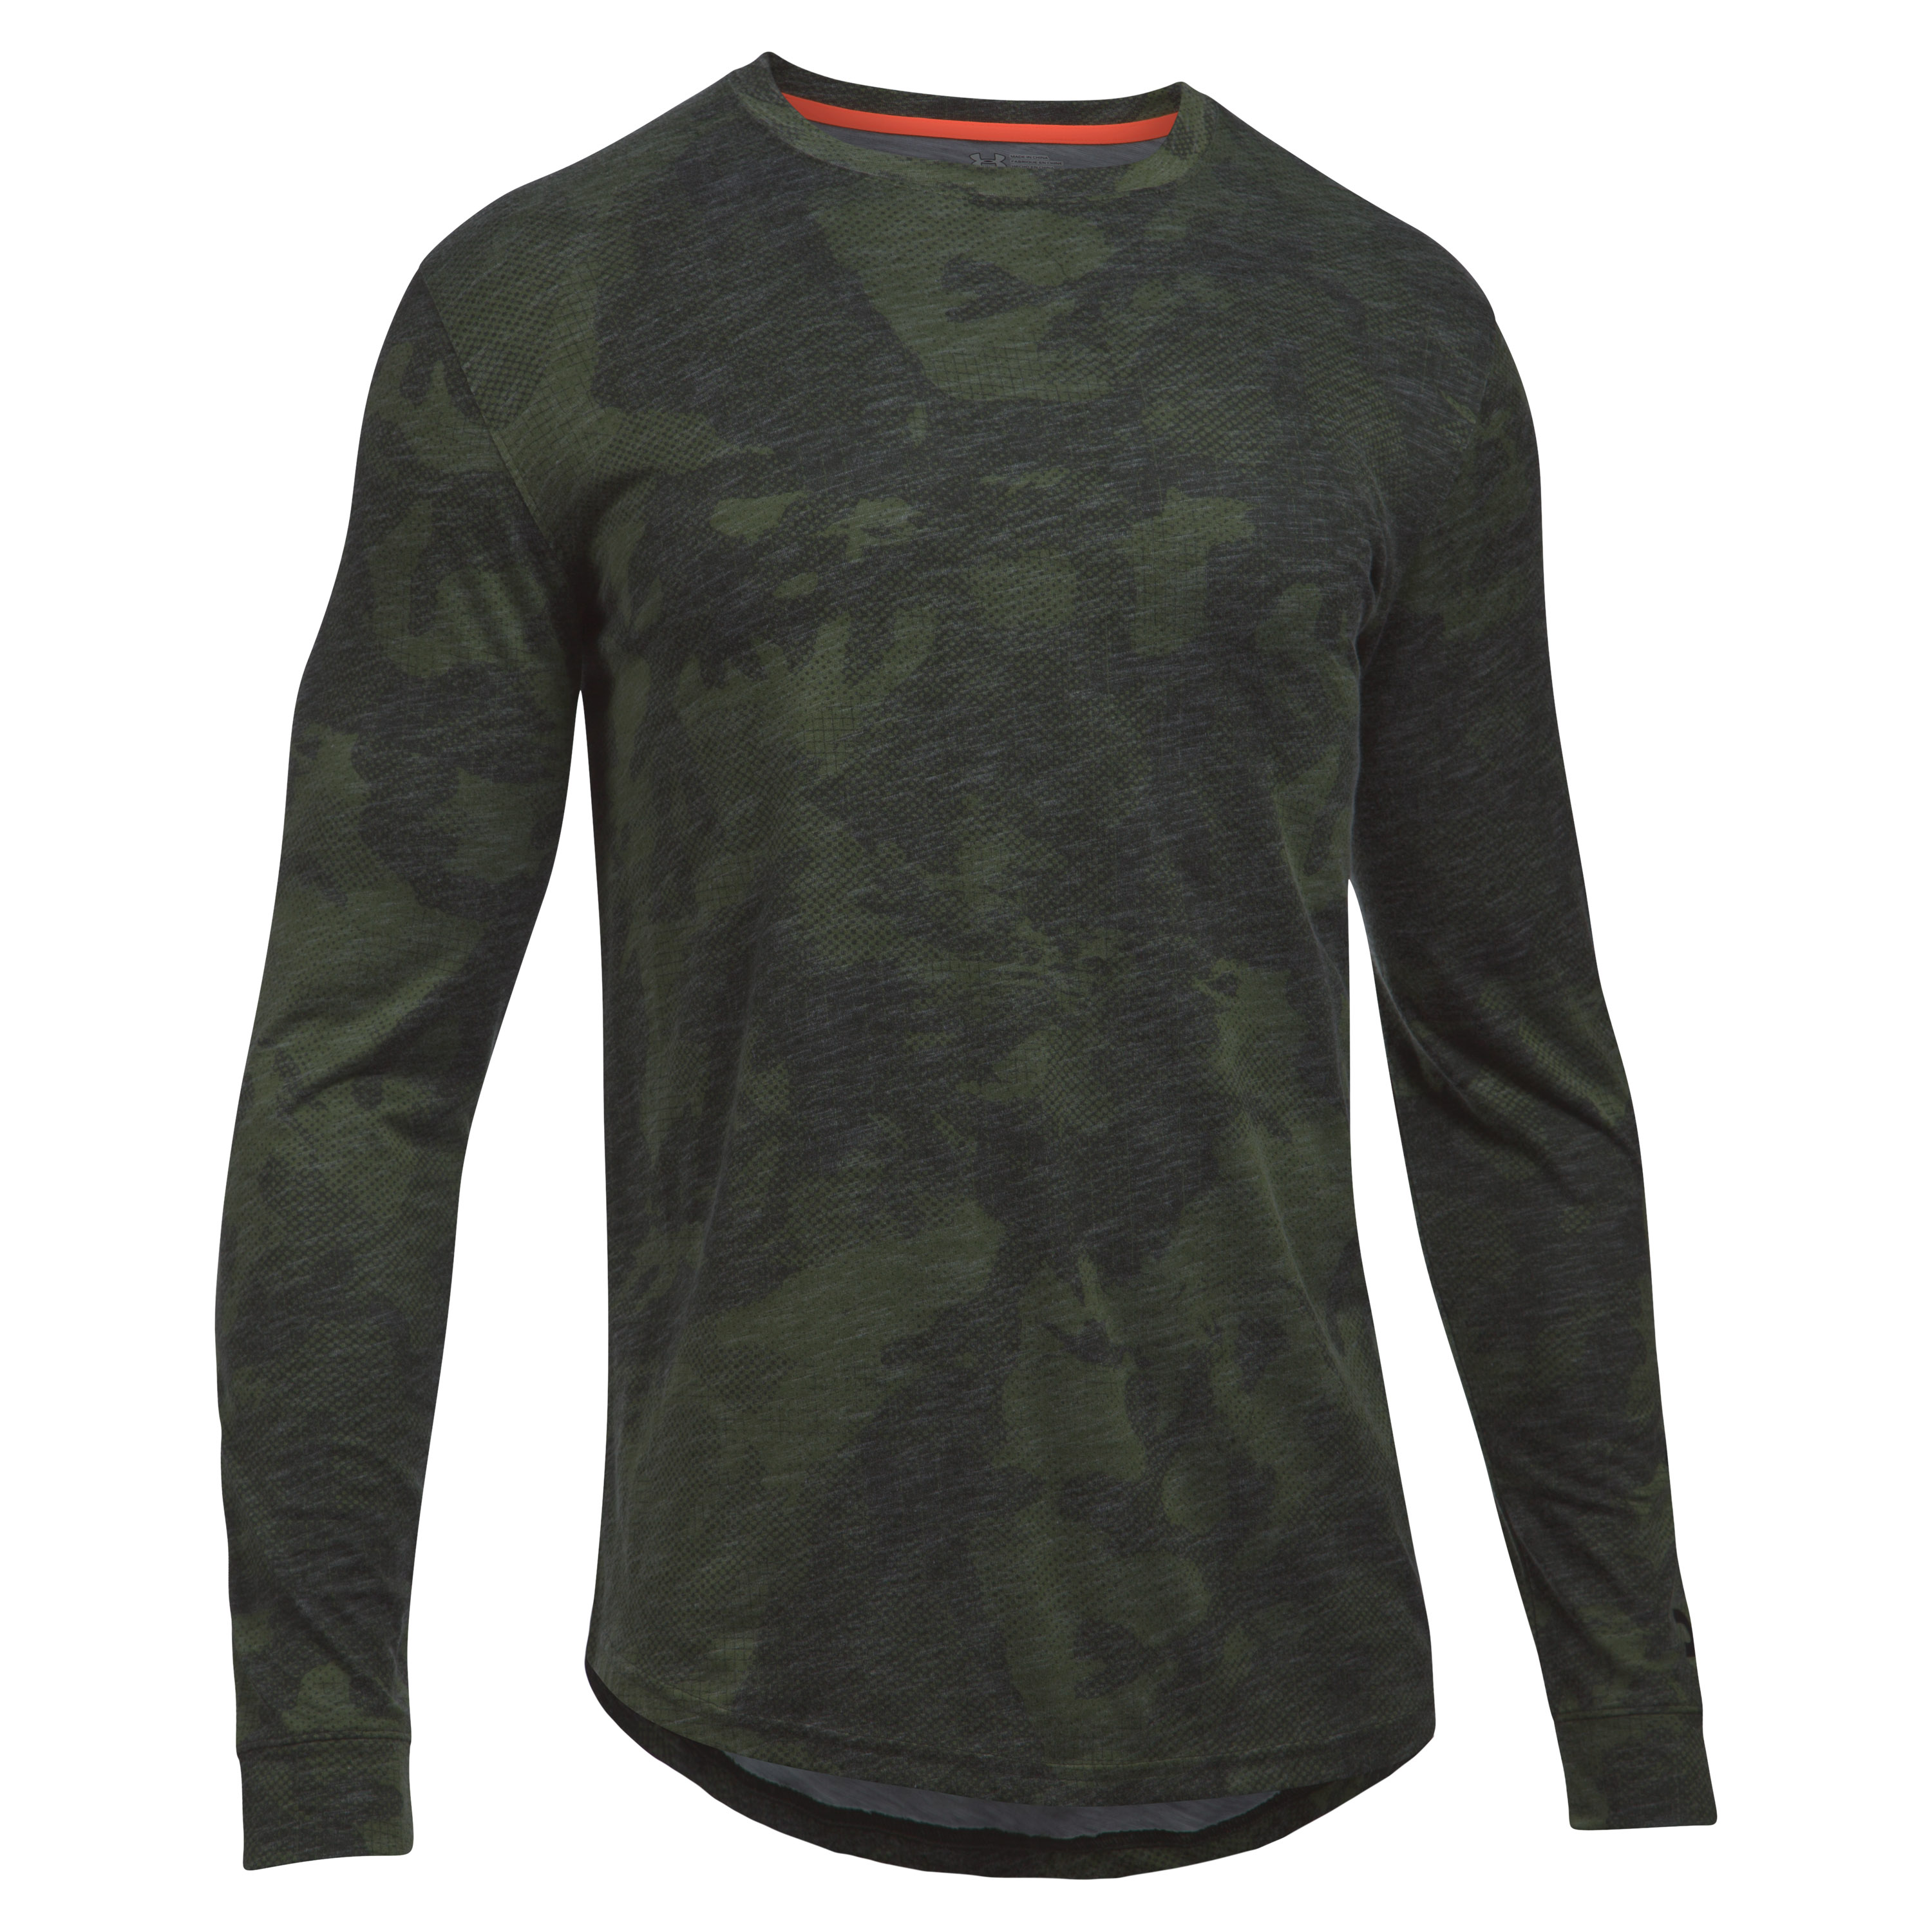 Under Armour Long Arm Graphic Tee green